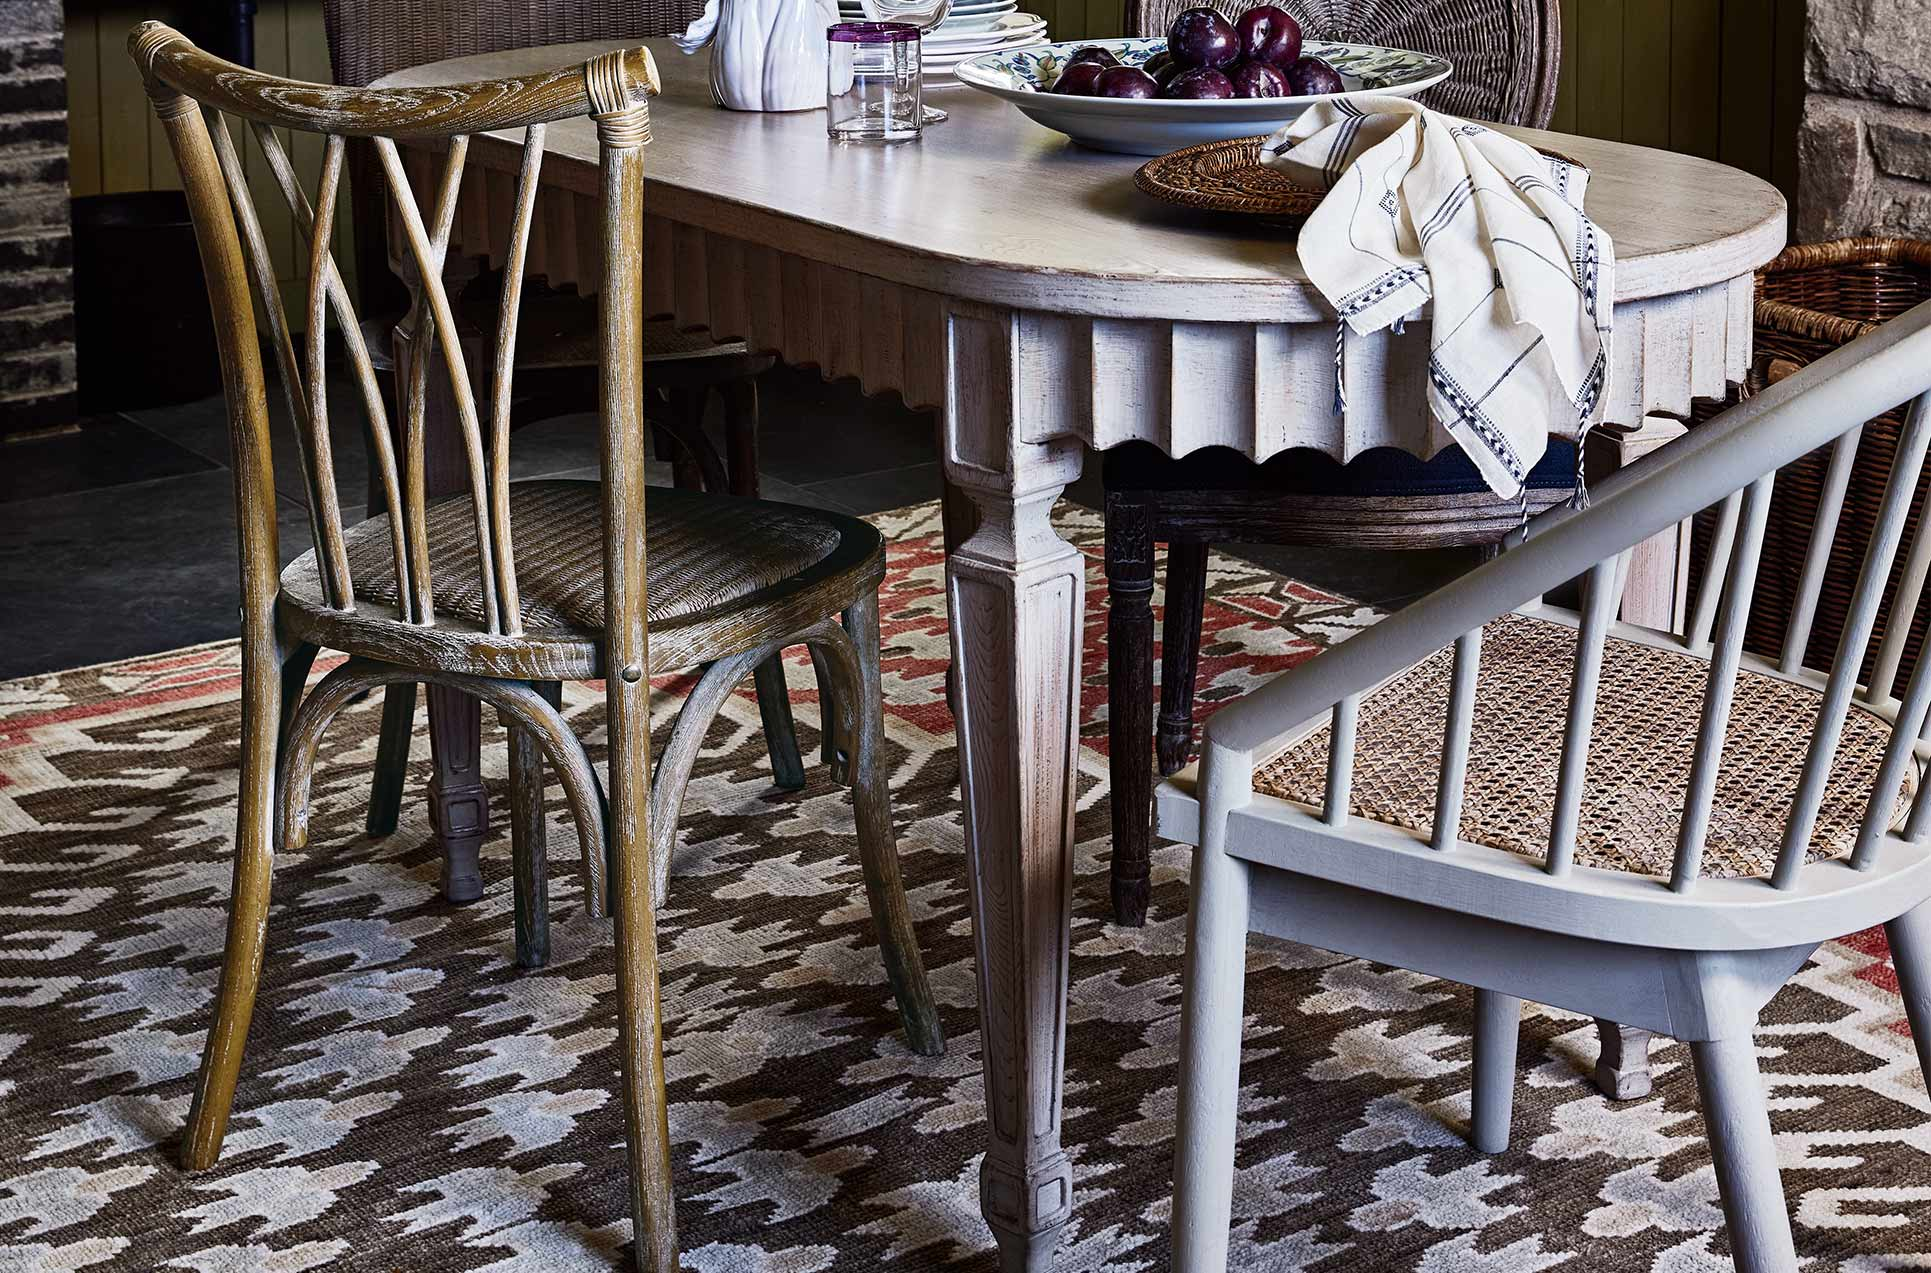 Rattan dining chairs around a light wooden table with pleated detailing on the edge